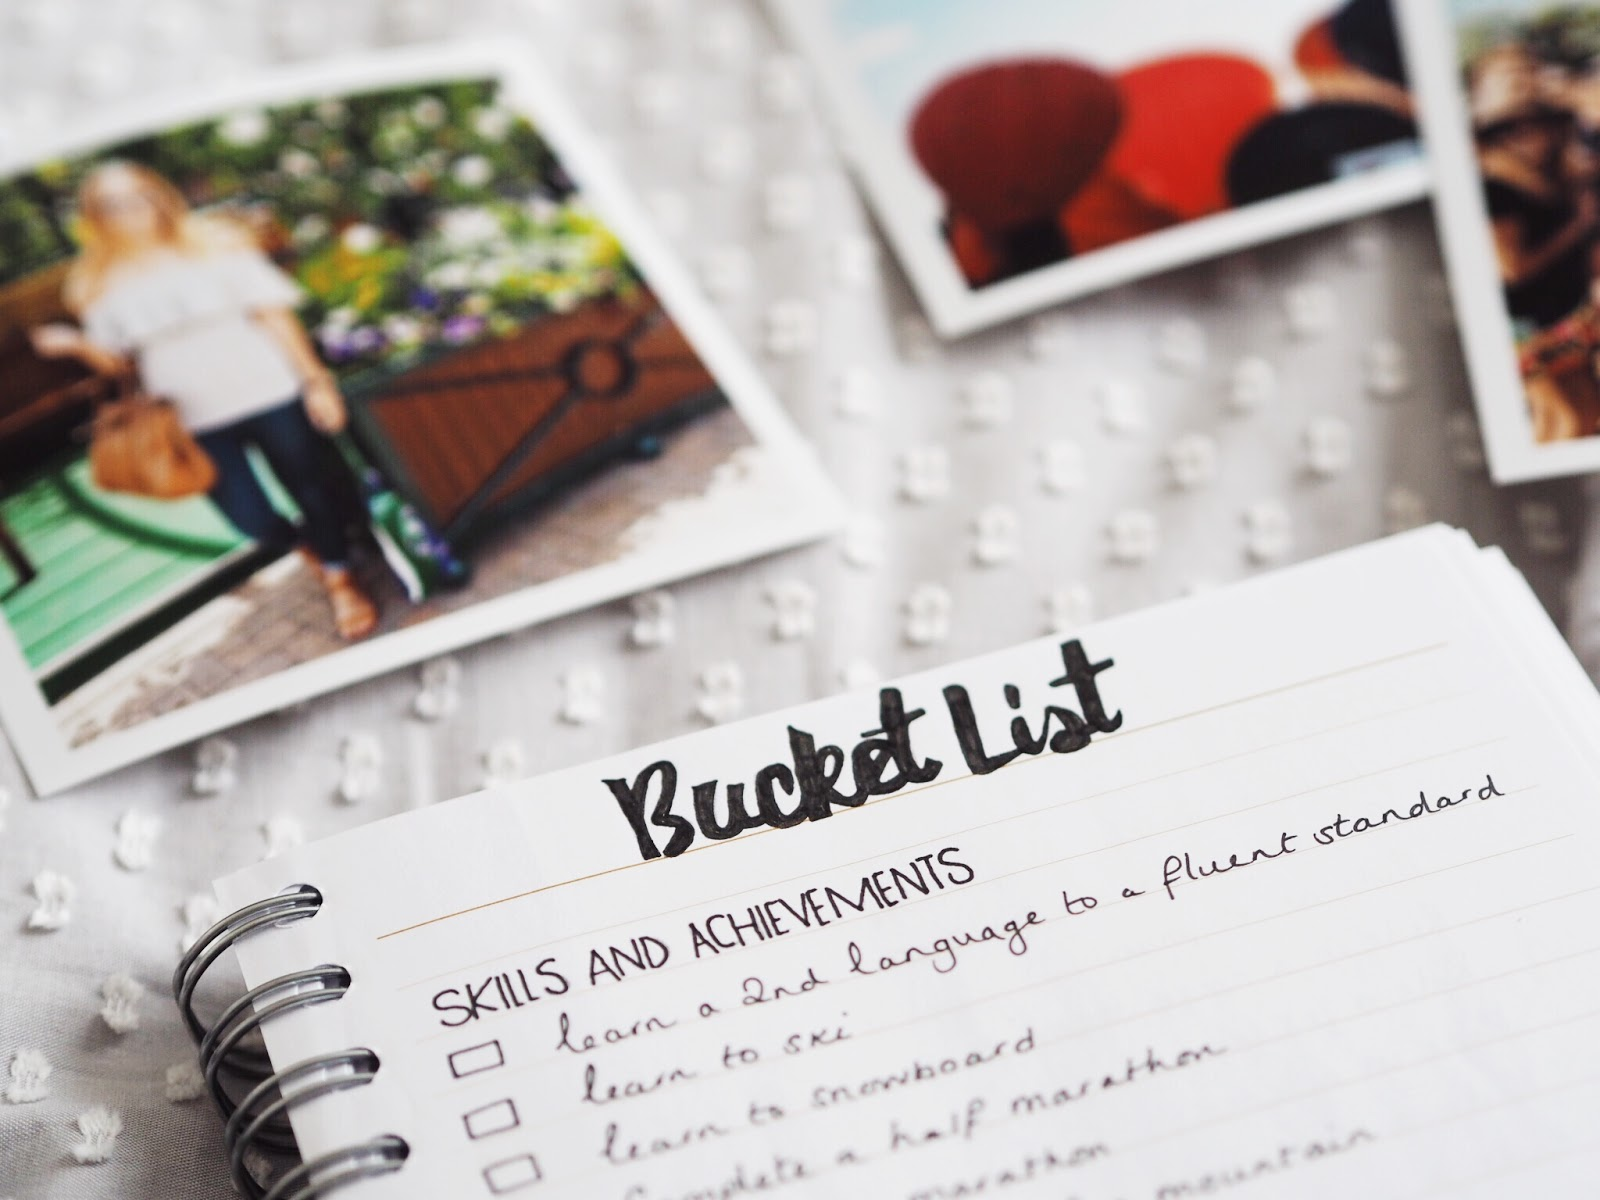 Revising my ultimate Bucket List for 2017